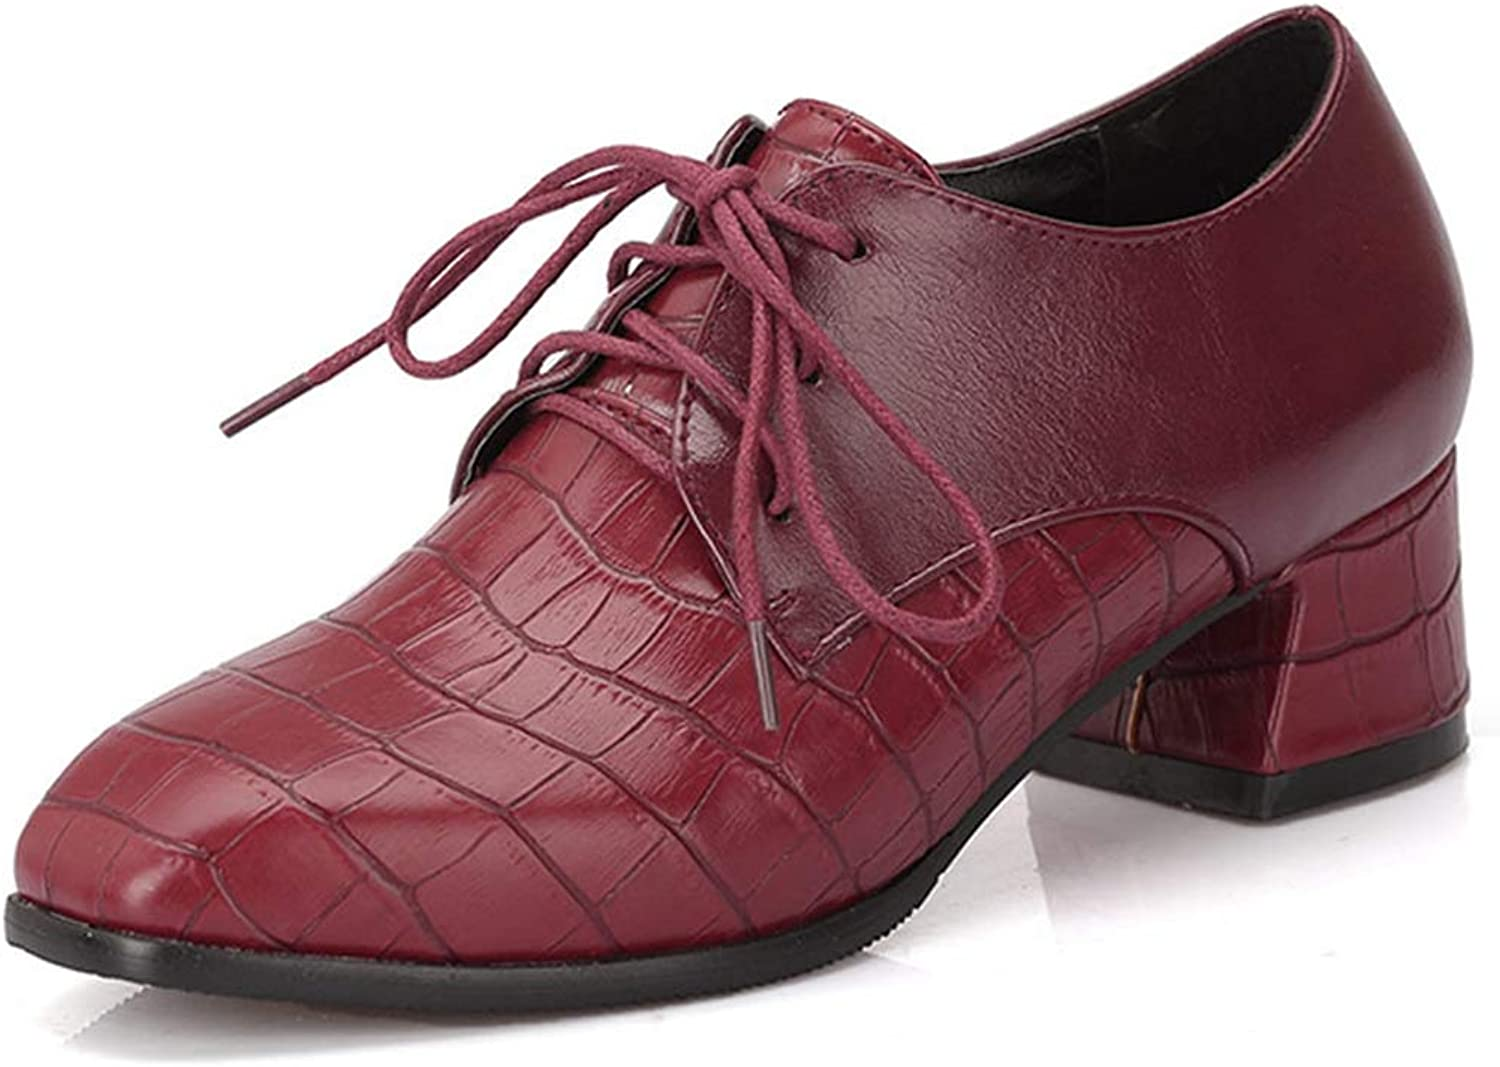 GIY Womens Platform Oxfords Lace-up Dress Pumps Loafers Vintage Handmade Mid Block Heel shoes